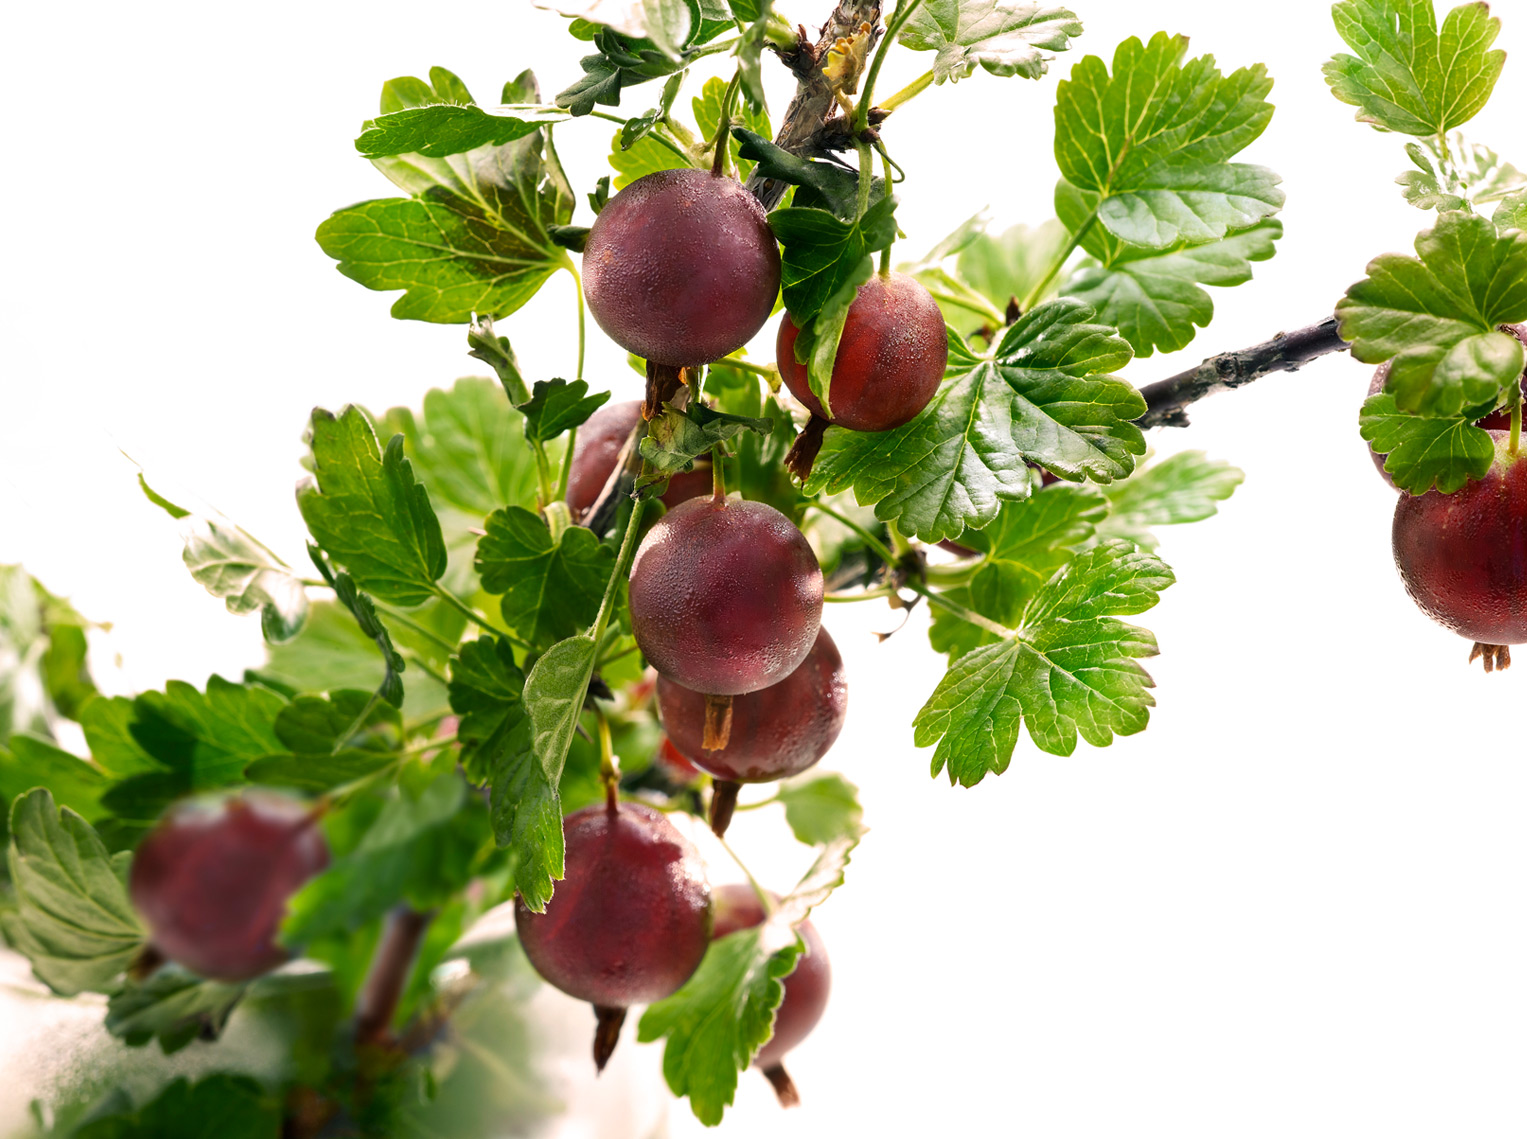 Fresh Gooseberries on a branch